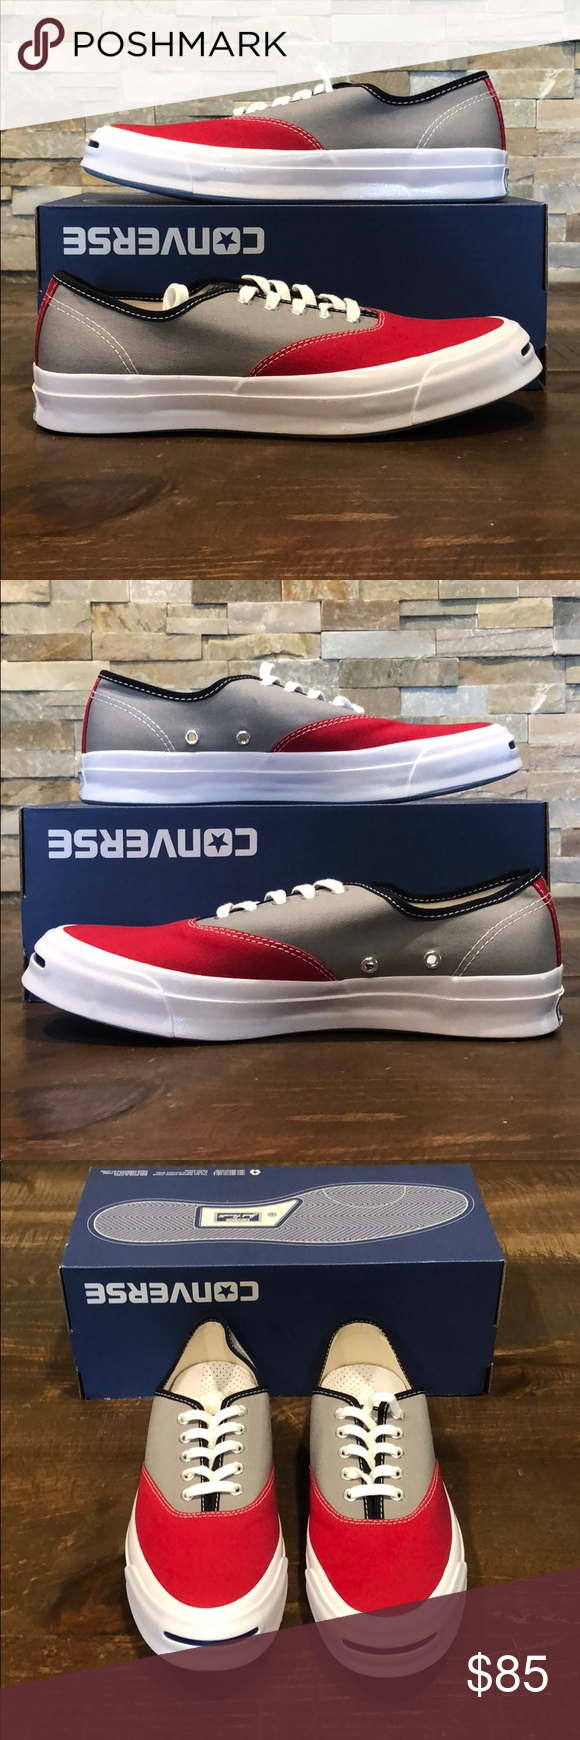 f4916d98f8499e Converse Jack Purcell low Crimson Dolphin Converse Jack Purcell Low Crimson Dolphin  Men 9 - Women 10.5 151456C New With Box No Lid On Box Shipped Double ...